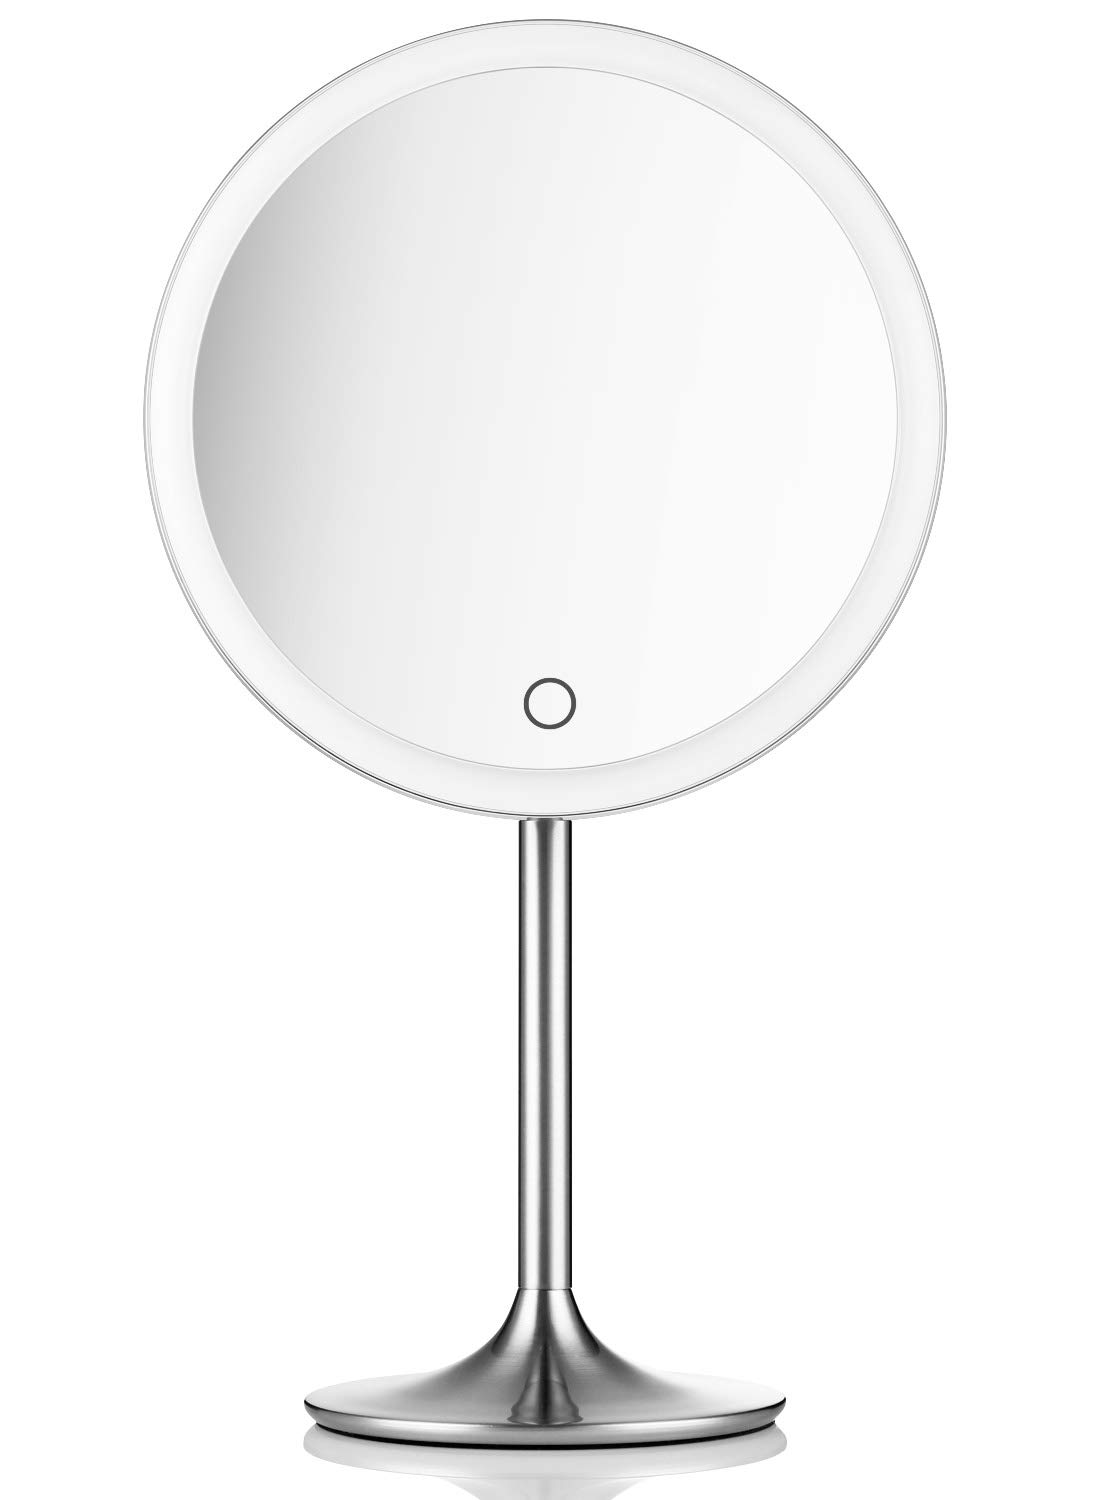 Miusco Lighted Makeup Vanity Mirror Pro, 5X + 10X Magnification, Ultra Bright HD Lighting System, Rechargable & Cordless, Touch Activated, Brush Stainless Steel